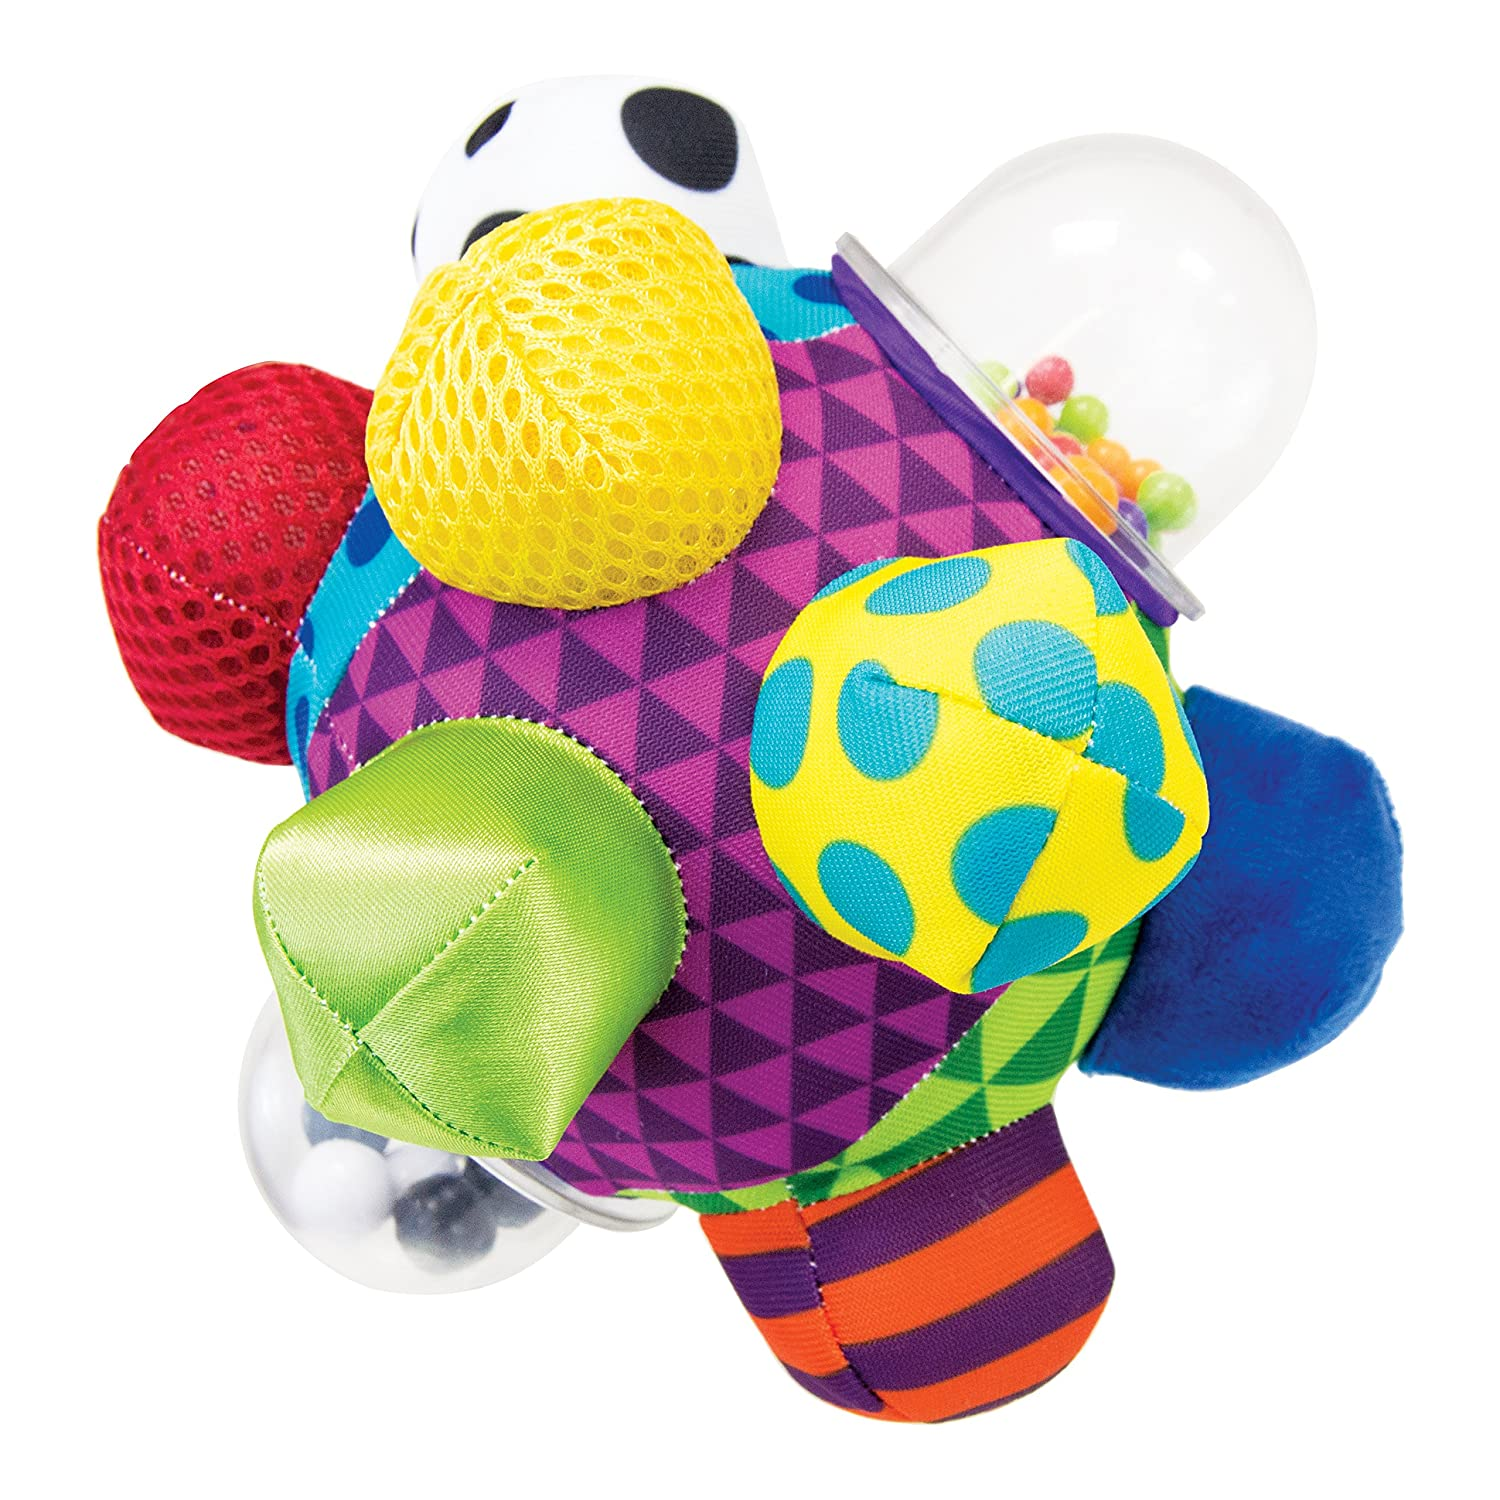 sassy ball best toys for 1 year old girls